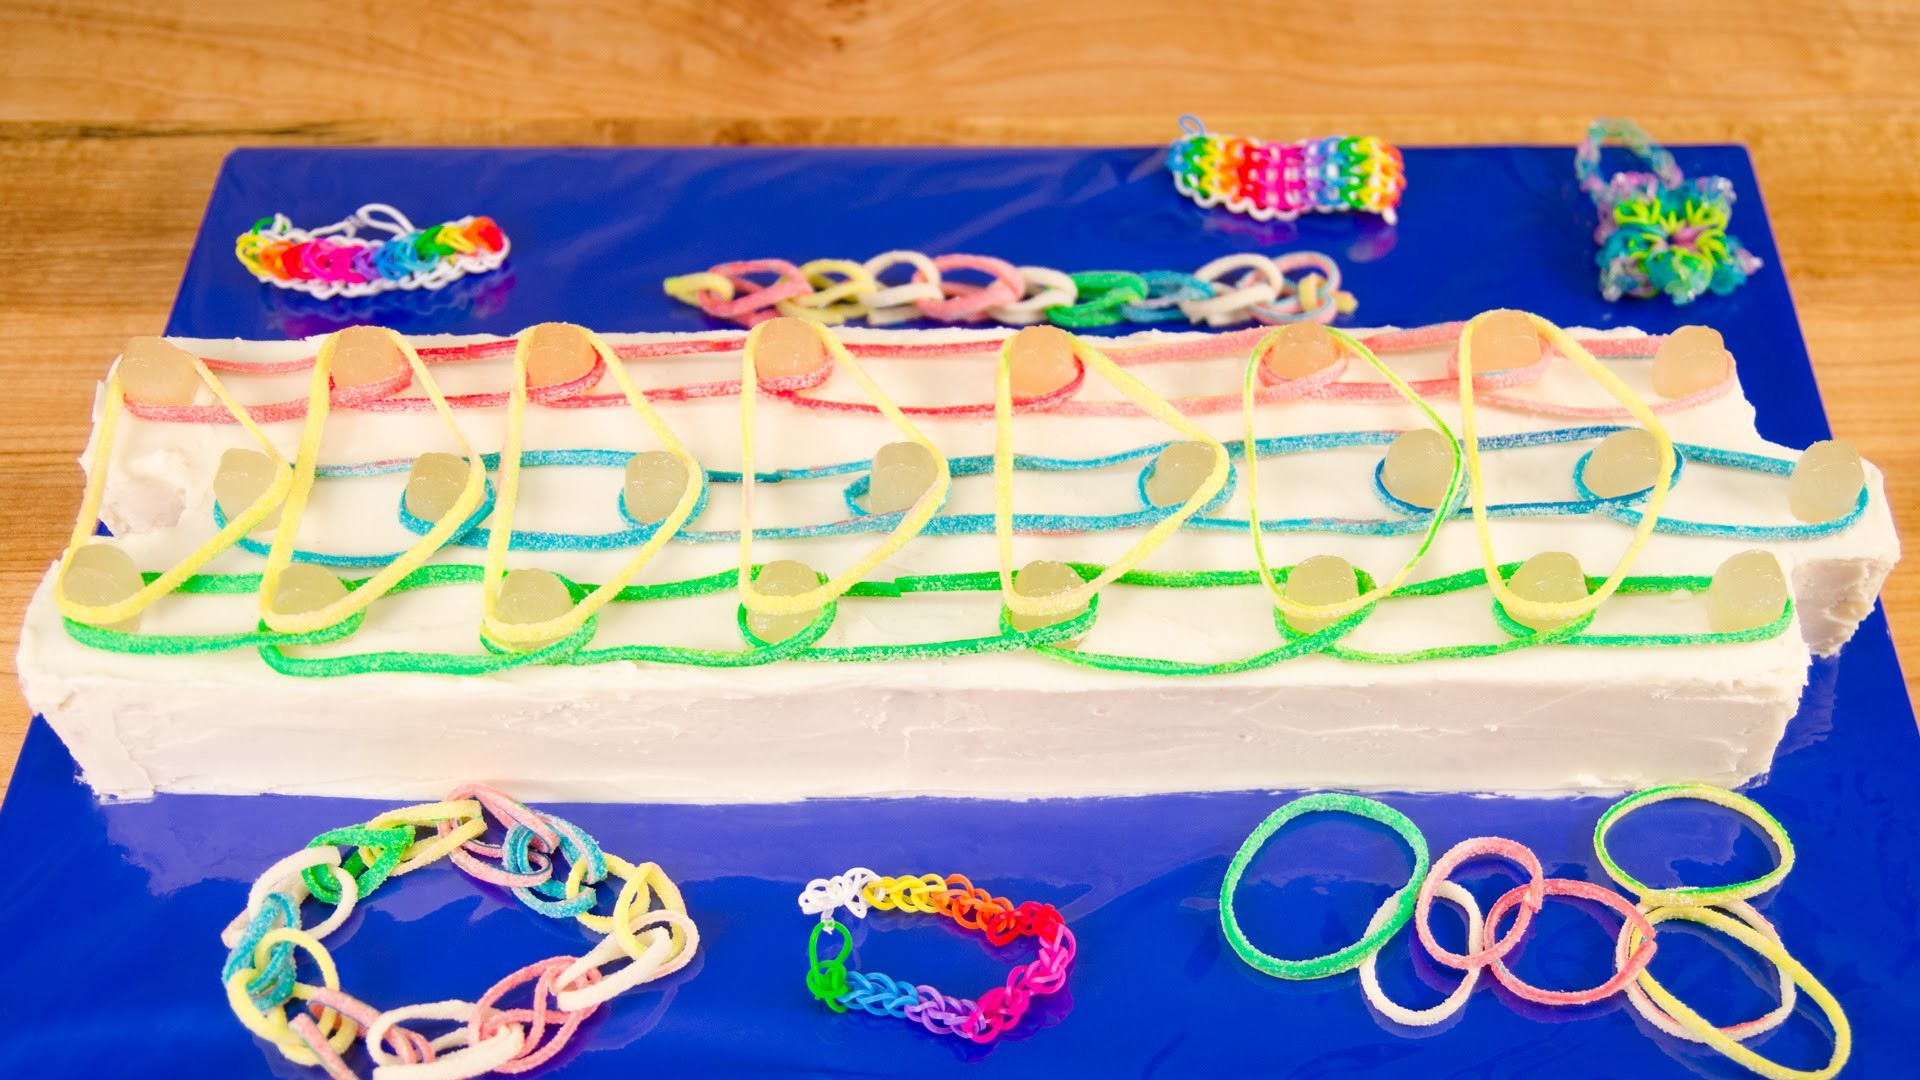 Rainbow Loom Cake from Cookies Cupcakes and Cardio